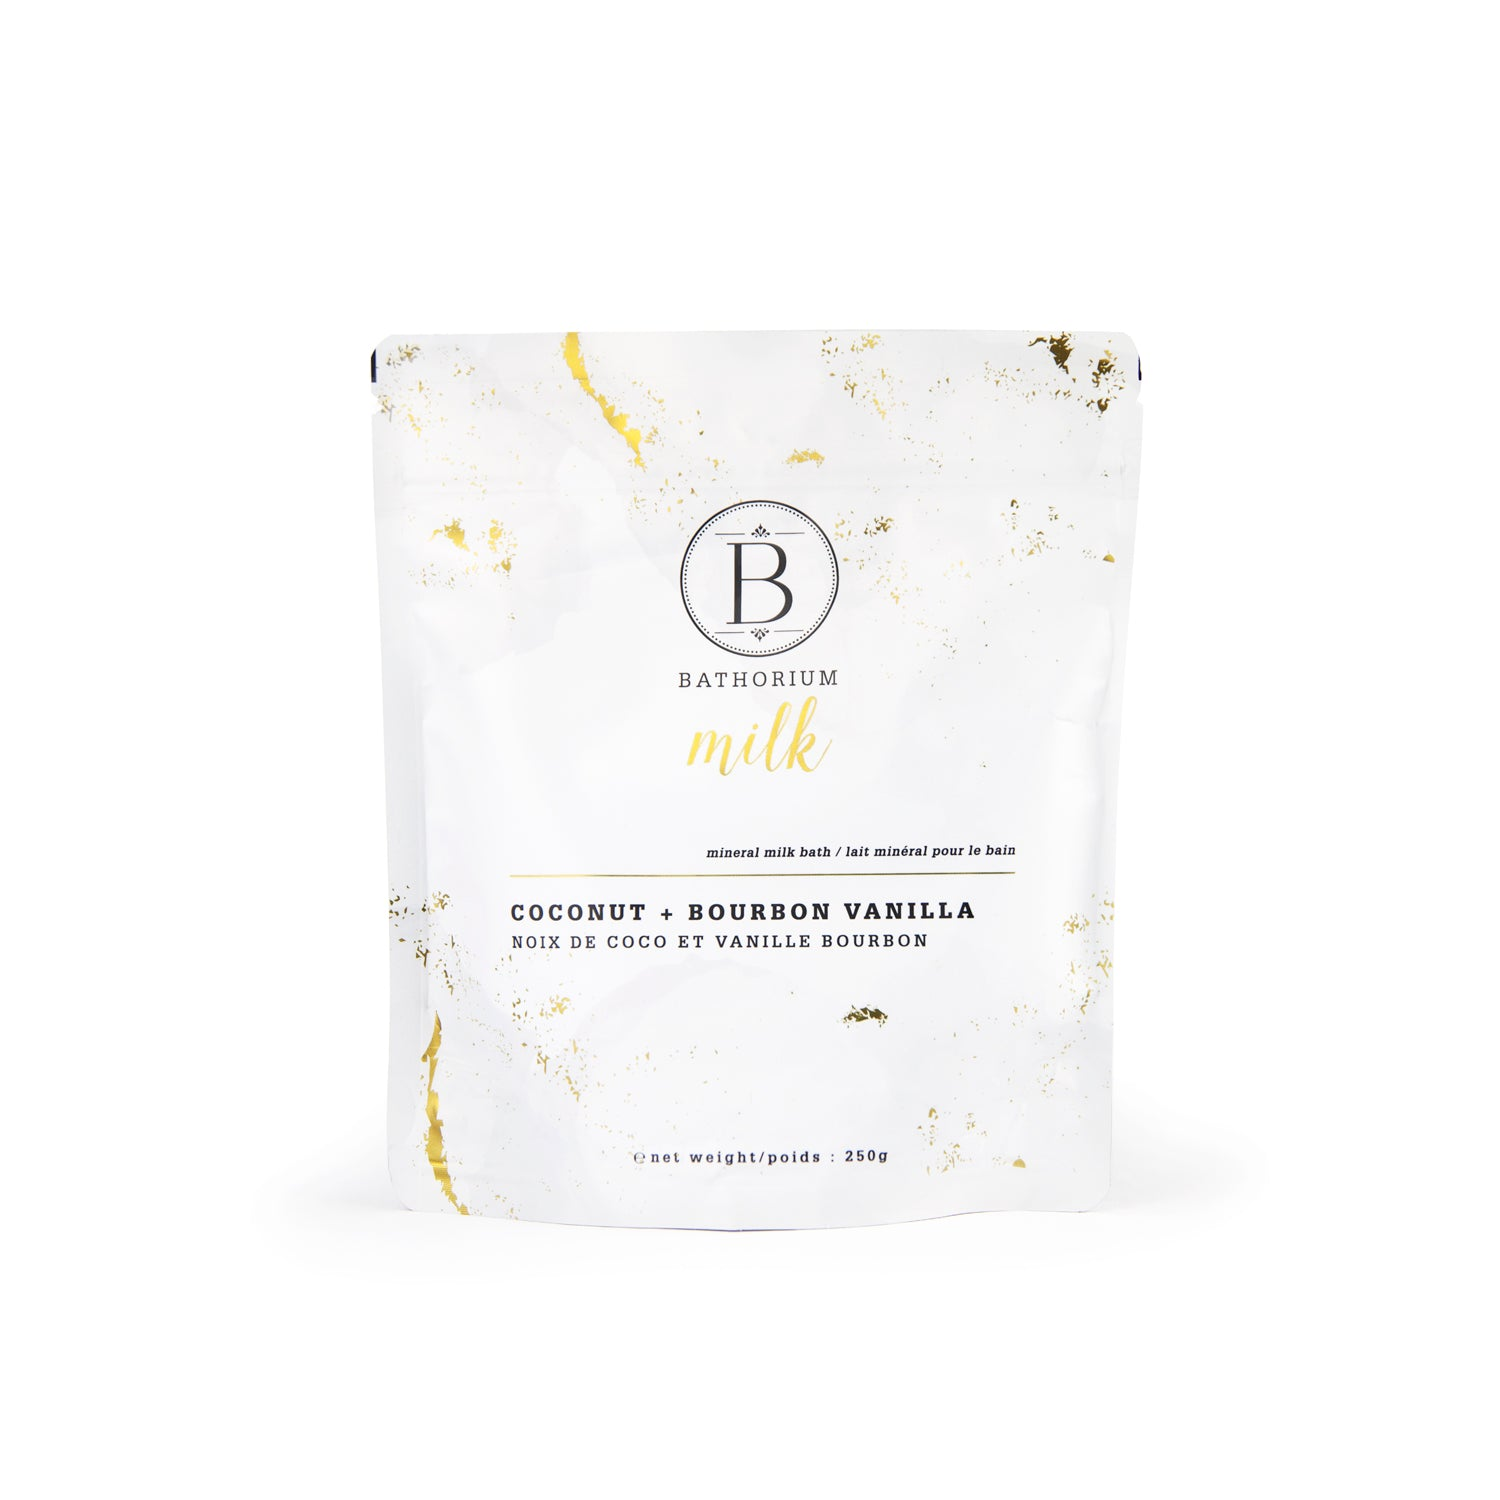 Coconut + Bourbon Vanilla Milk Bath